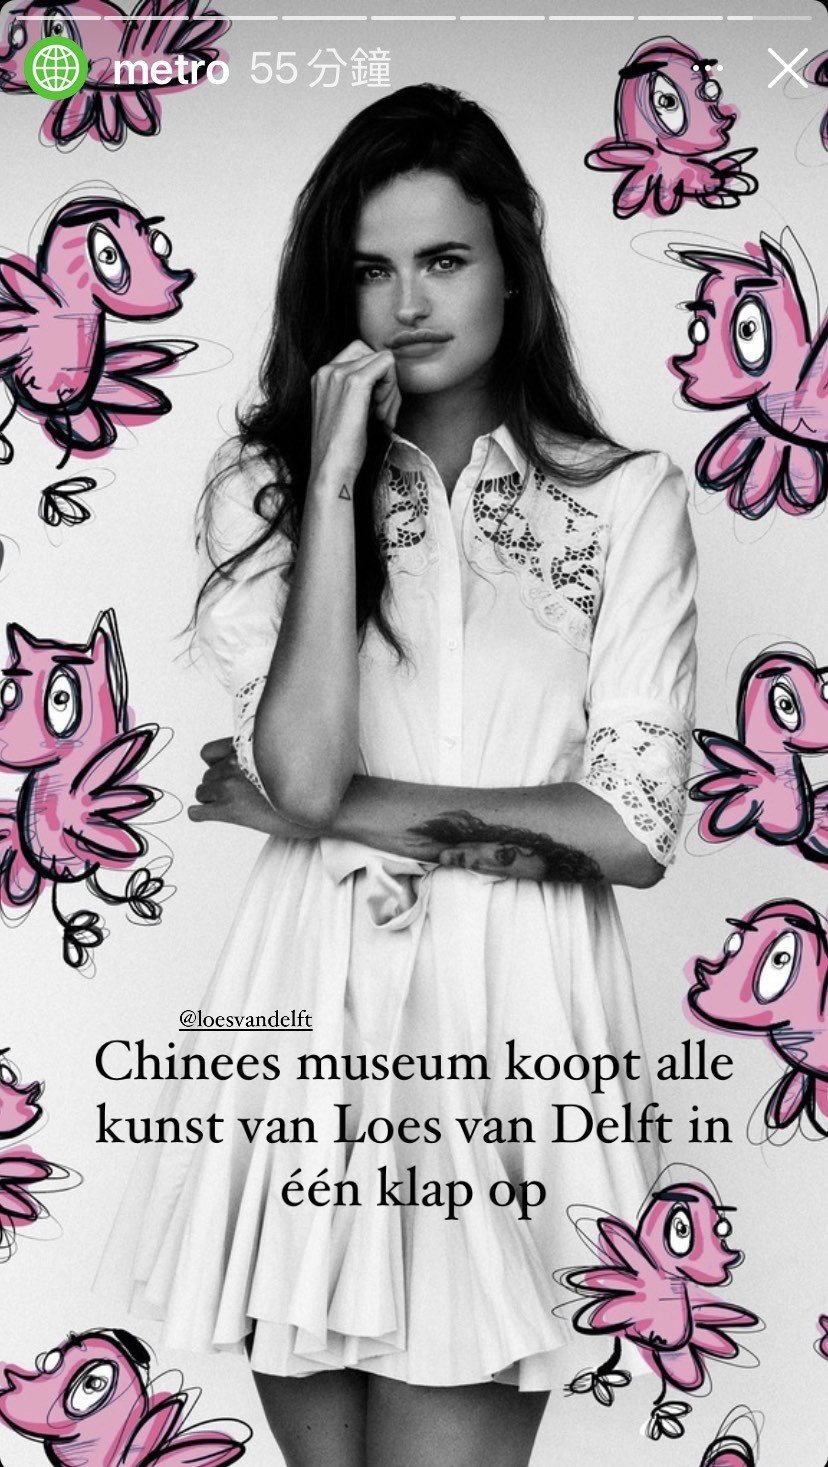 The Dutch media Metronieuws.nl reported that Lose Van Delft's works have attracted much attention in China.